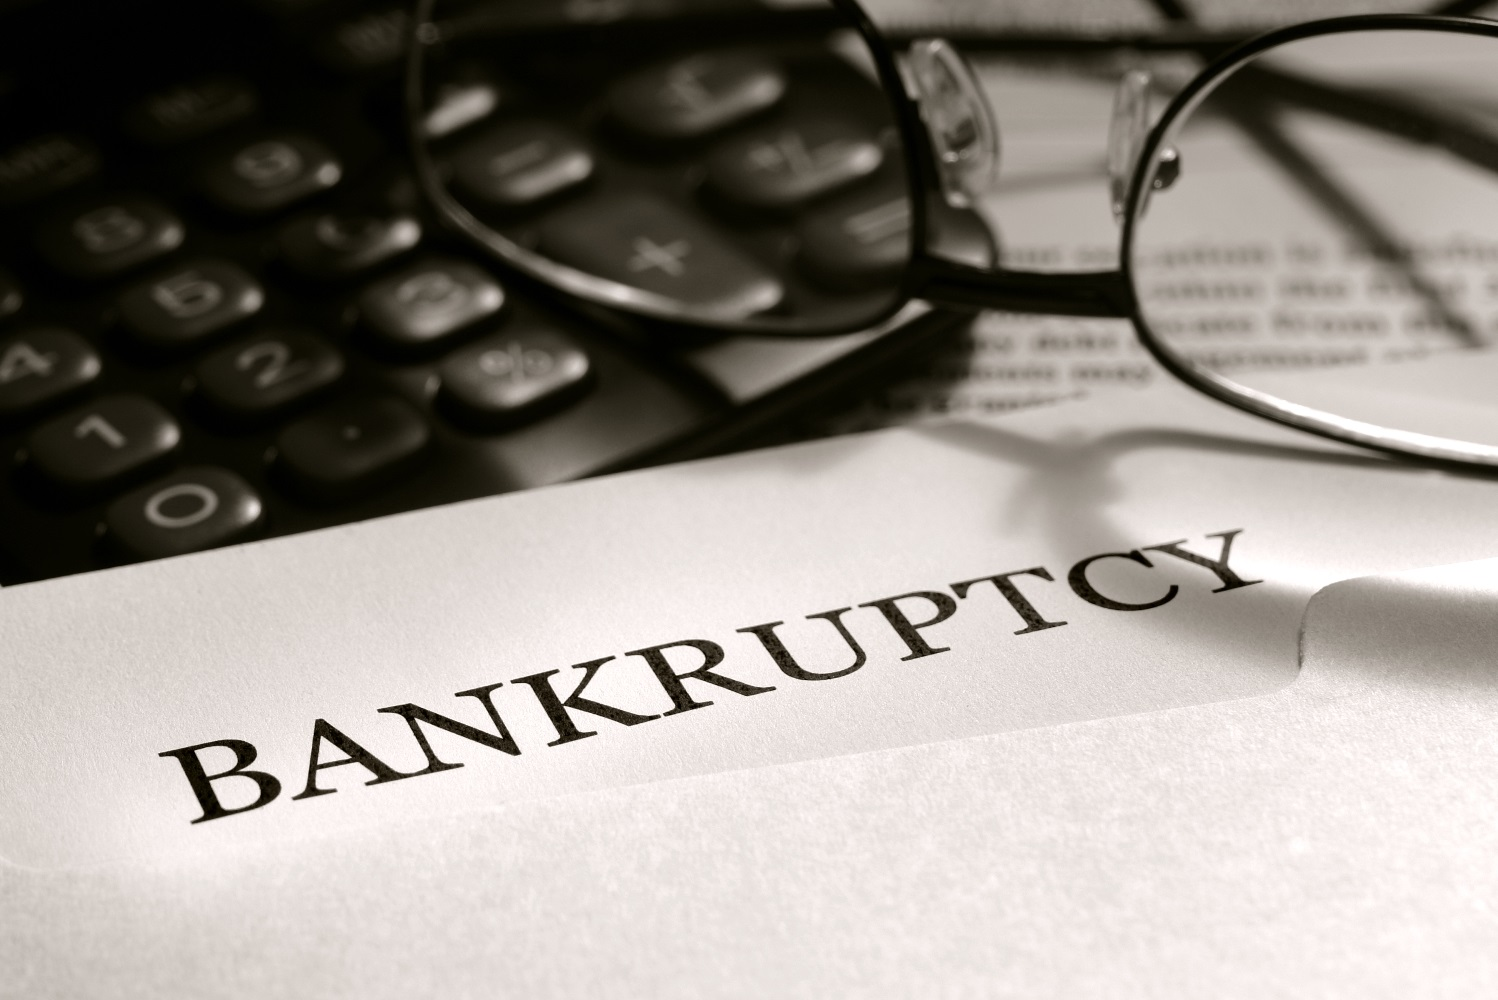 Significant Changes to Bankruptcy Notices and Body Corporate Levy Recoveries